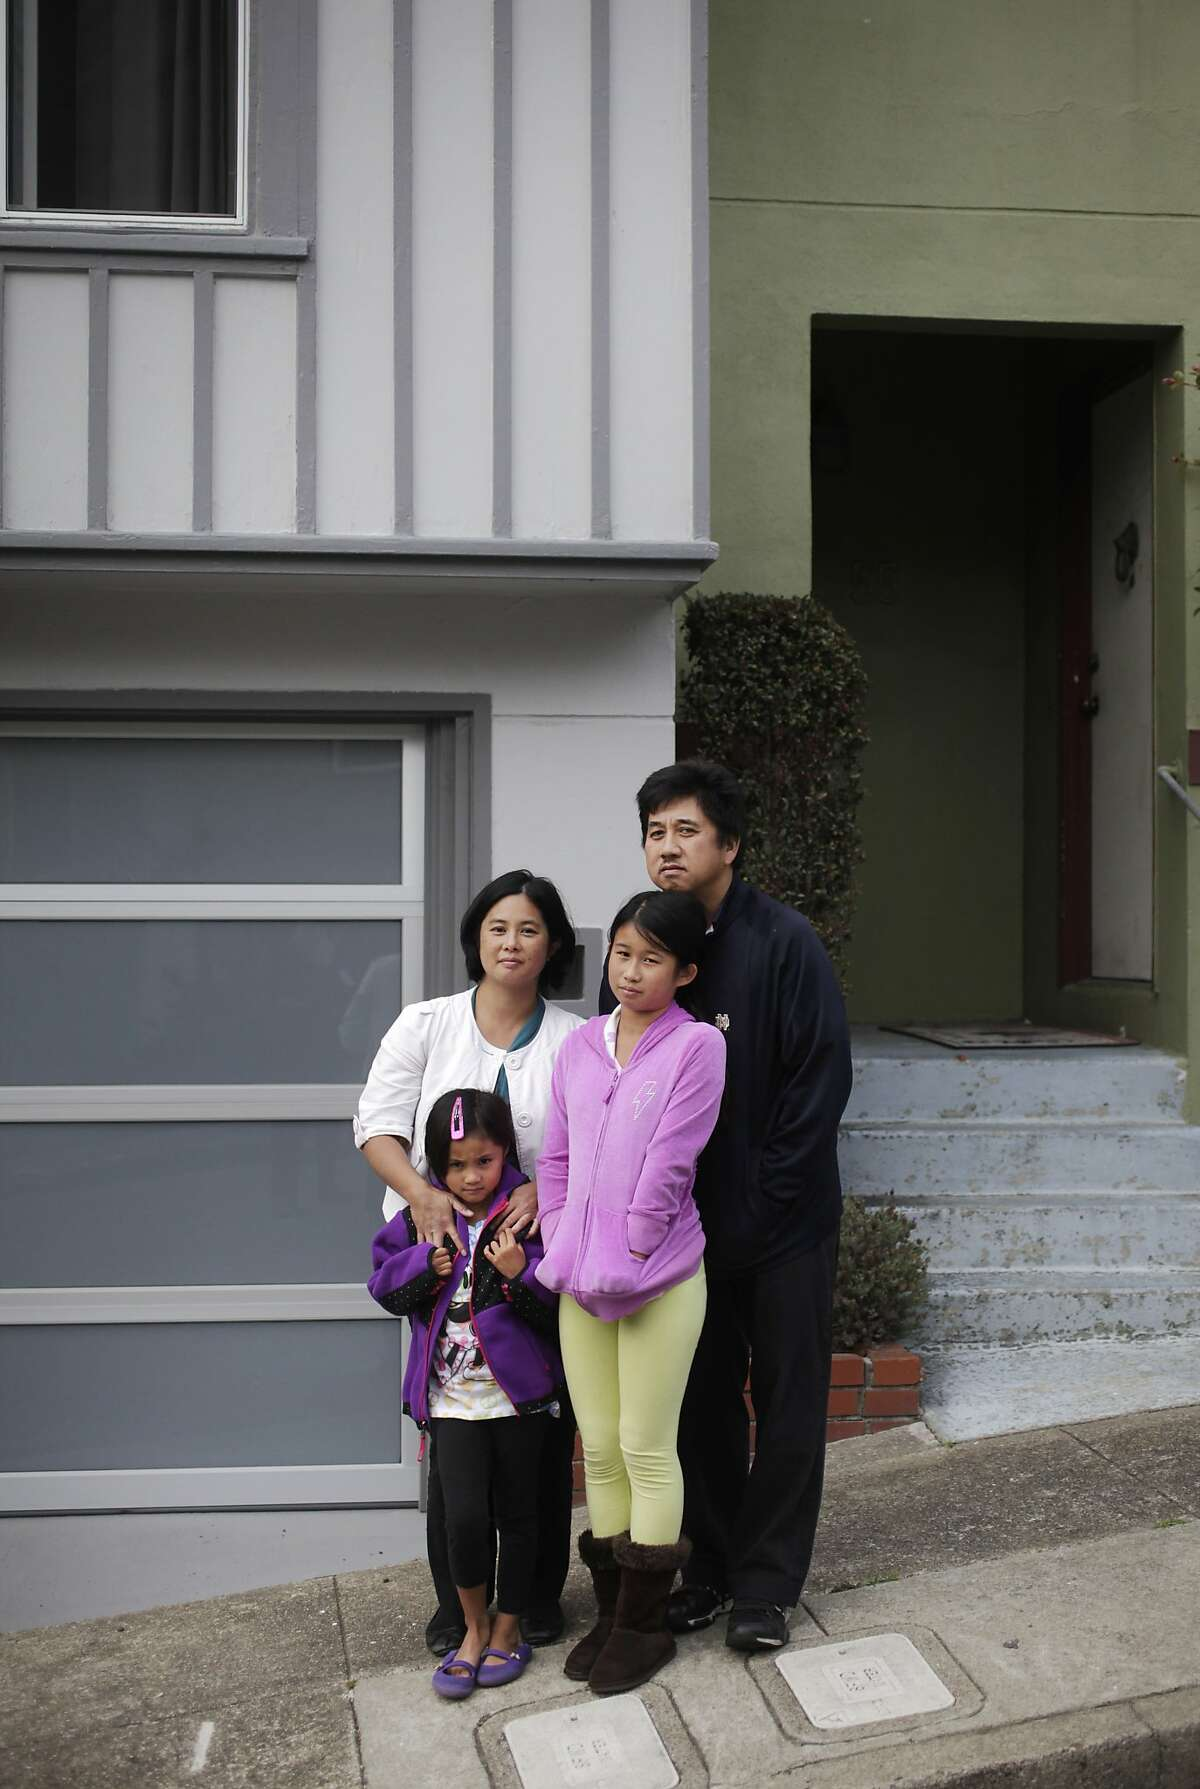 Alcan family members Kathy and Phil stand for a portrait with their daughters Stephanie, 7, and Samantha, 10, in front of their home, right, which now shares a wall with an Airbnb rental home, left, August 6, 2014 in a Twin Peaks cul-de-sac in San Francisco, Calif. A group of neighbors who live on the street are upset about an increase of homes that are being rented to Airbnb. Of 34 homes on the street, three are now Airbnb, according to the neighbors.